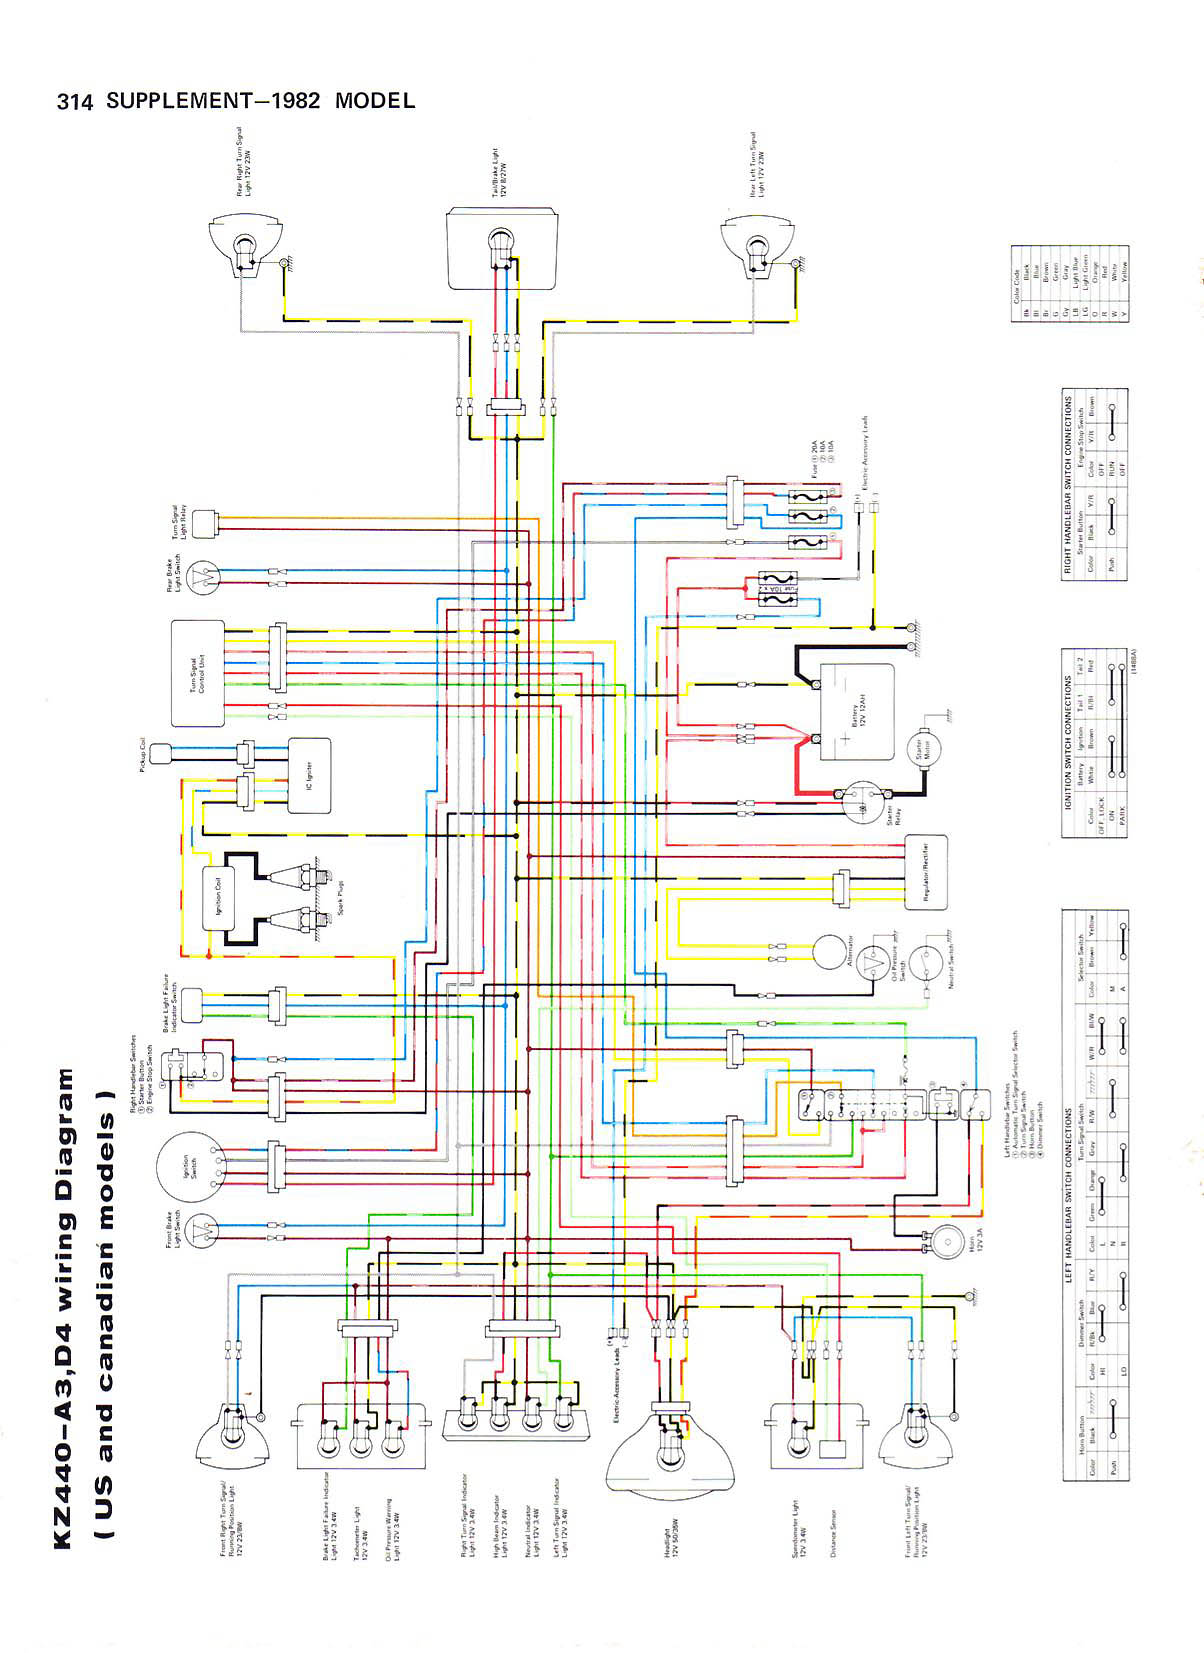 Kawasaki KZ 440 %2780 a %2782 Service Manual_Page_311 index of kz440 wiring diagrams 1980 kawasaki kz440 wiring diagram at readyjetset.co